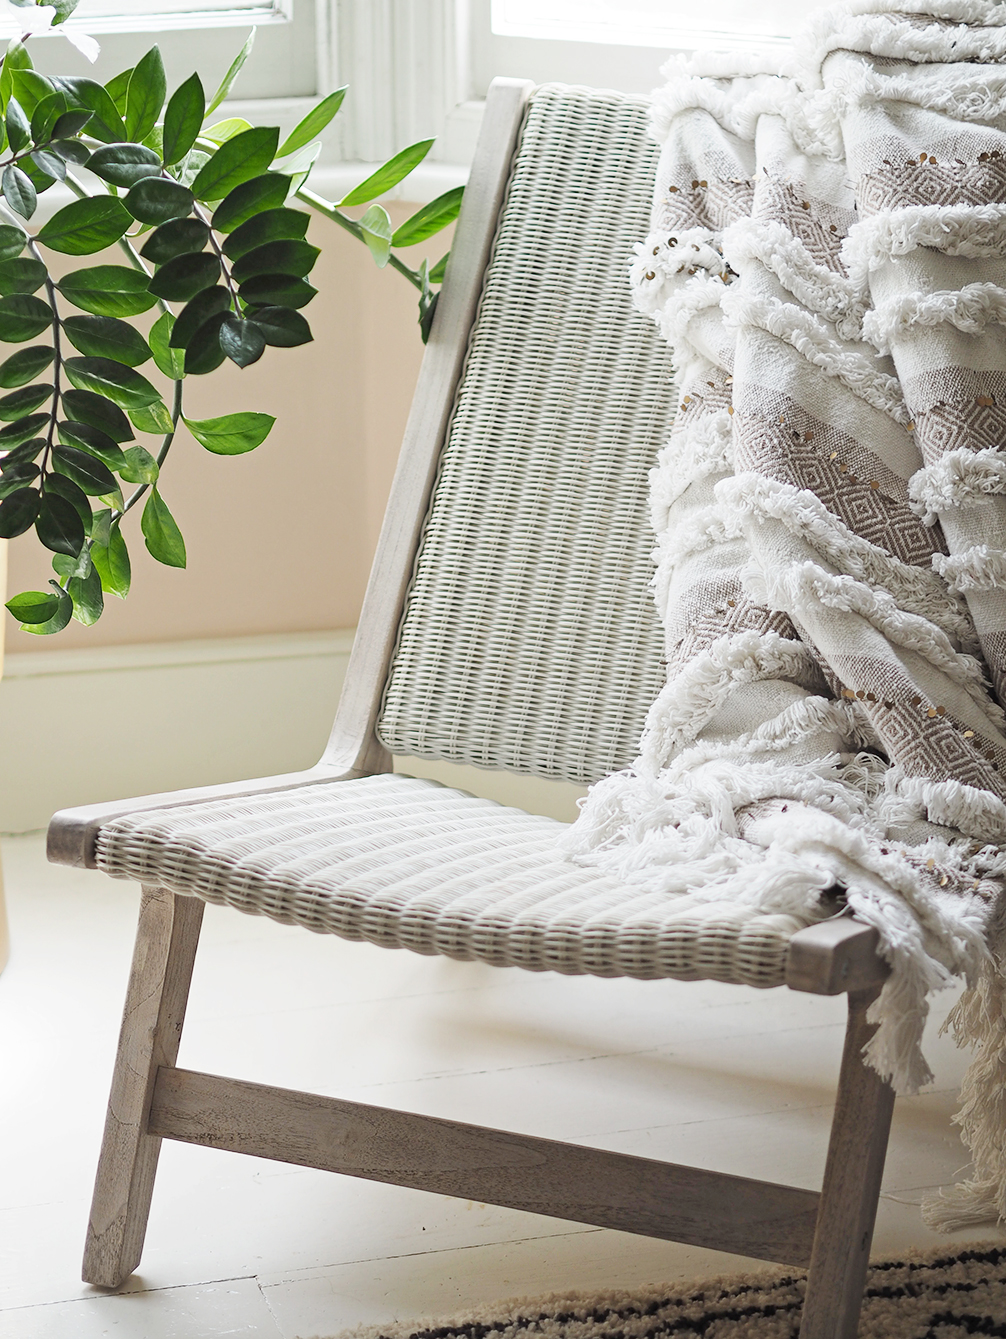 Outdoor Furniture Indoors - French For Pineapple Blog - close up of wicker and teak chair with moroccan throw and zz plant